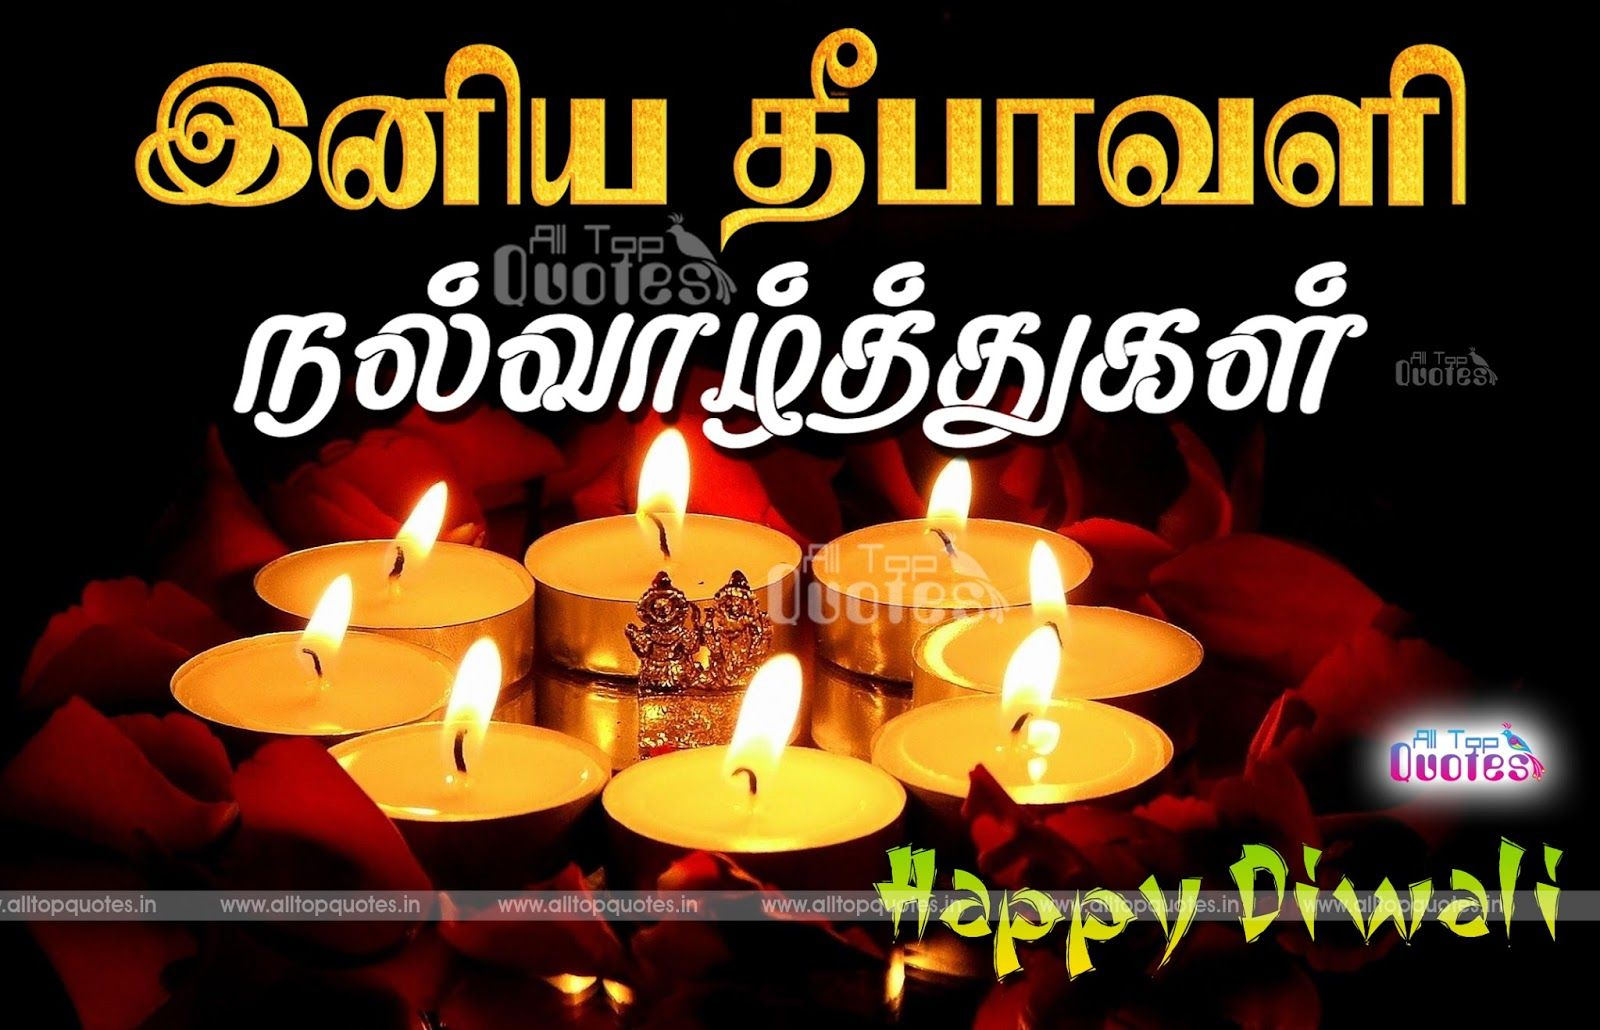 happy diwali tamil greetings quotes online hd images